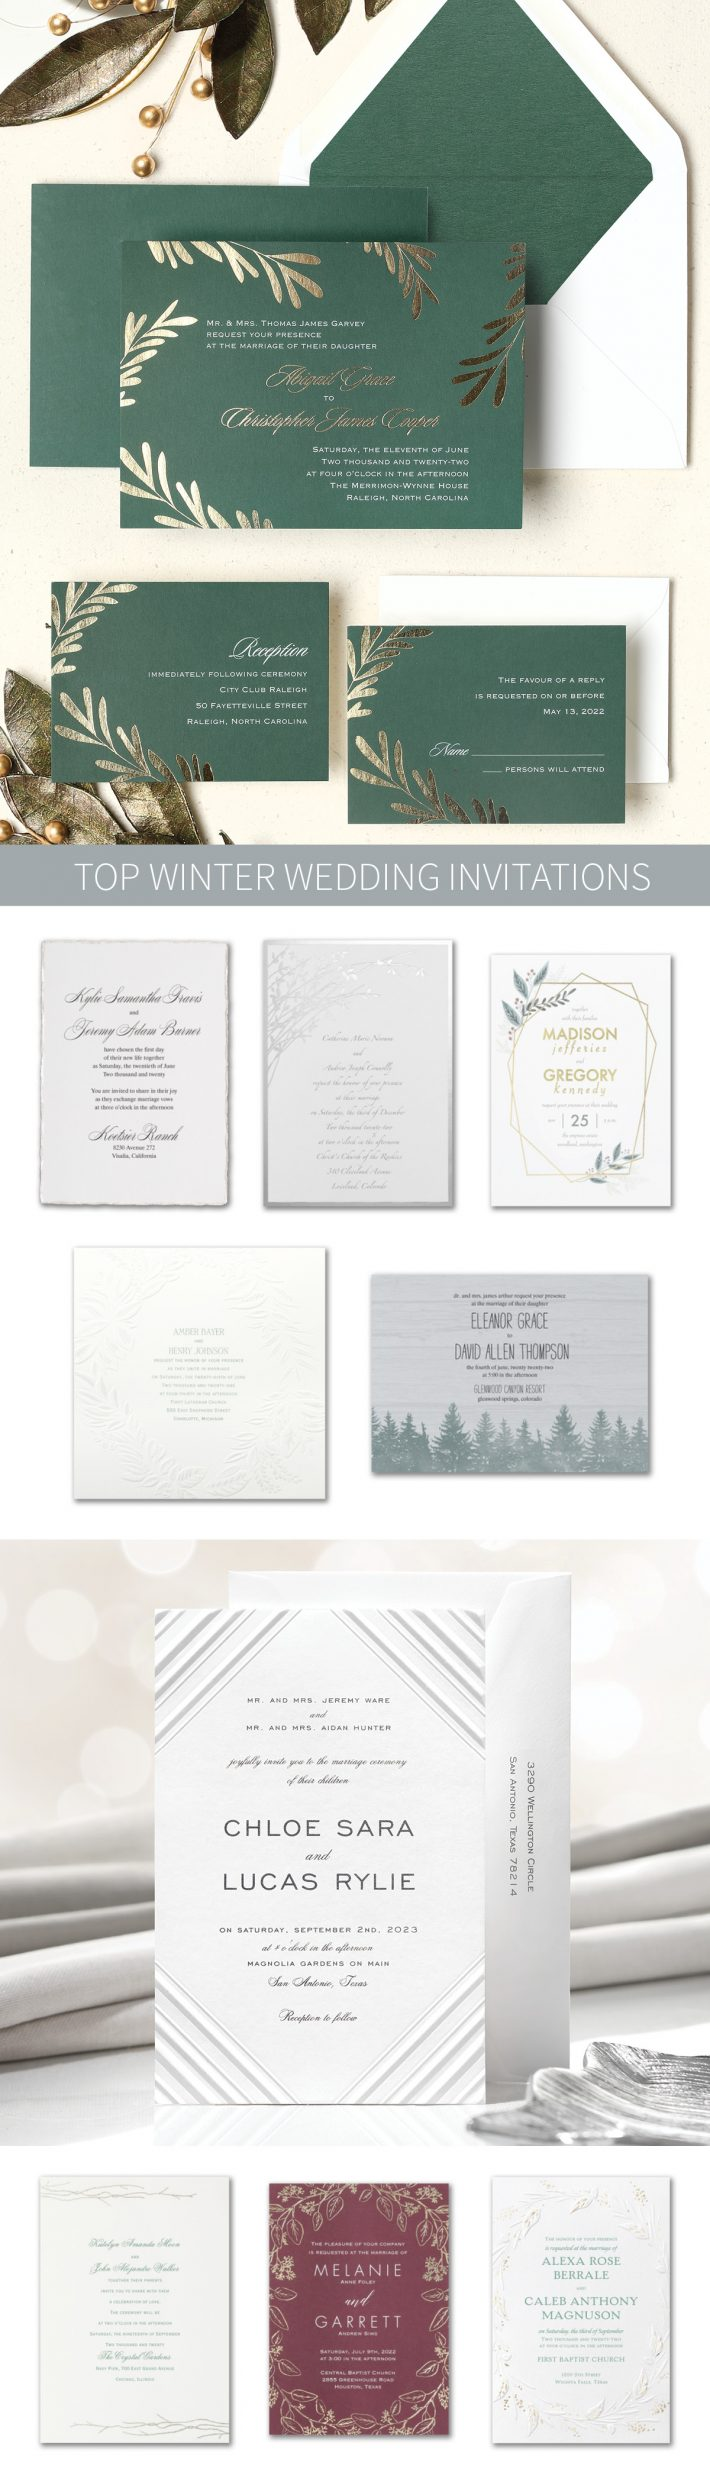 Top Winter Wedding Invitations